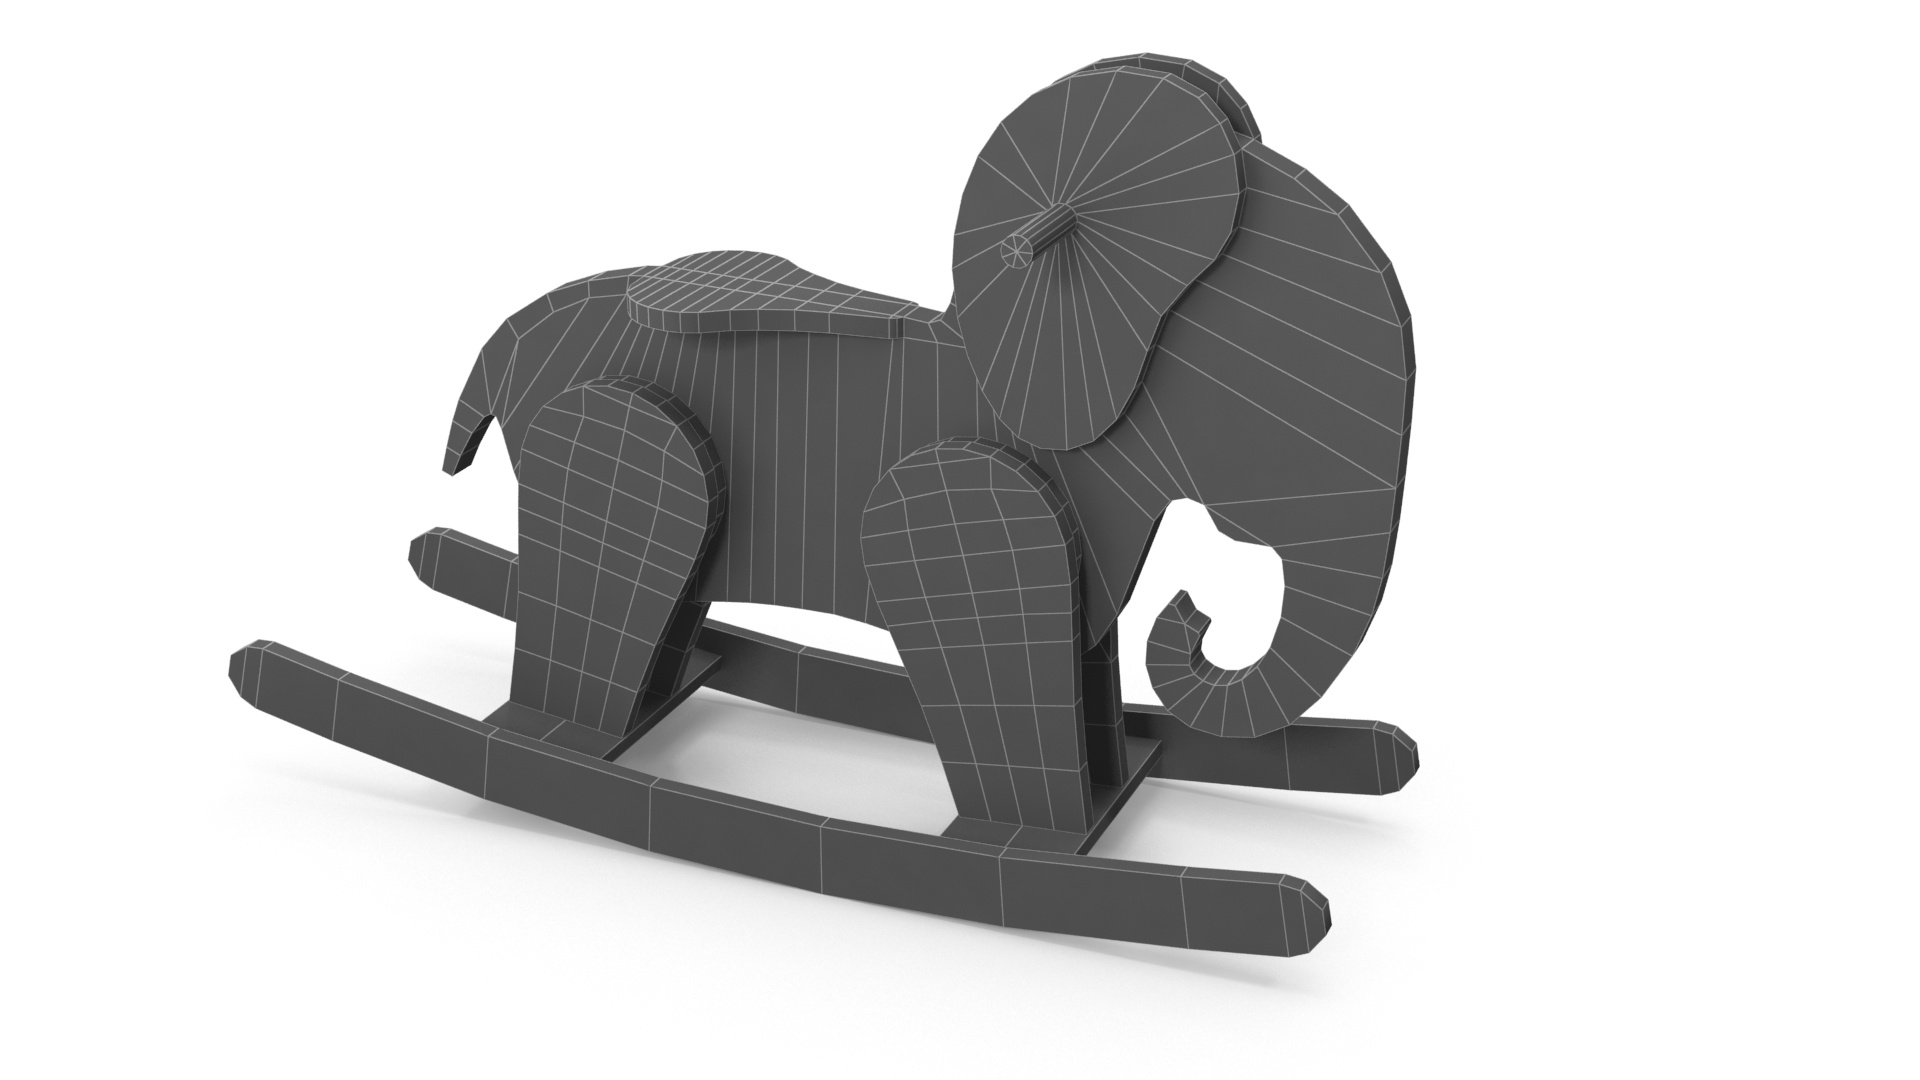 Wooden Elephant Rocking Horse 3d Model Flatpyramid